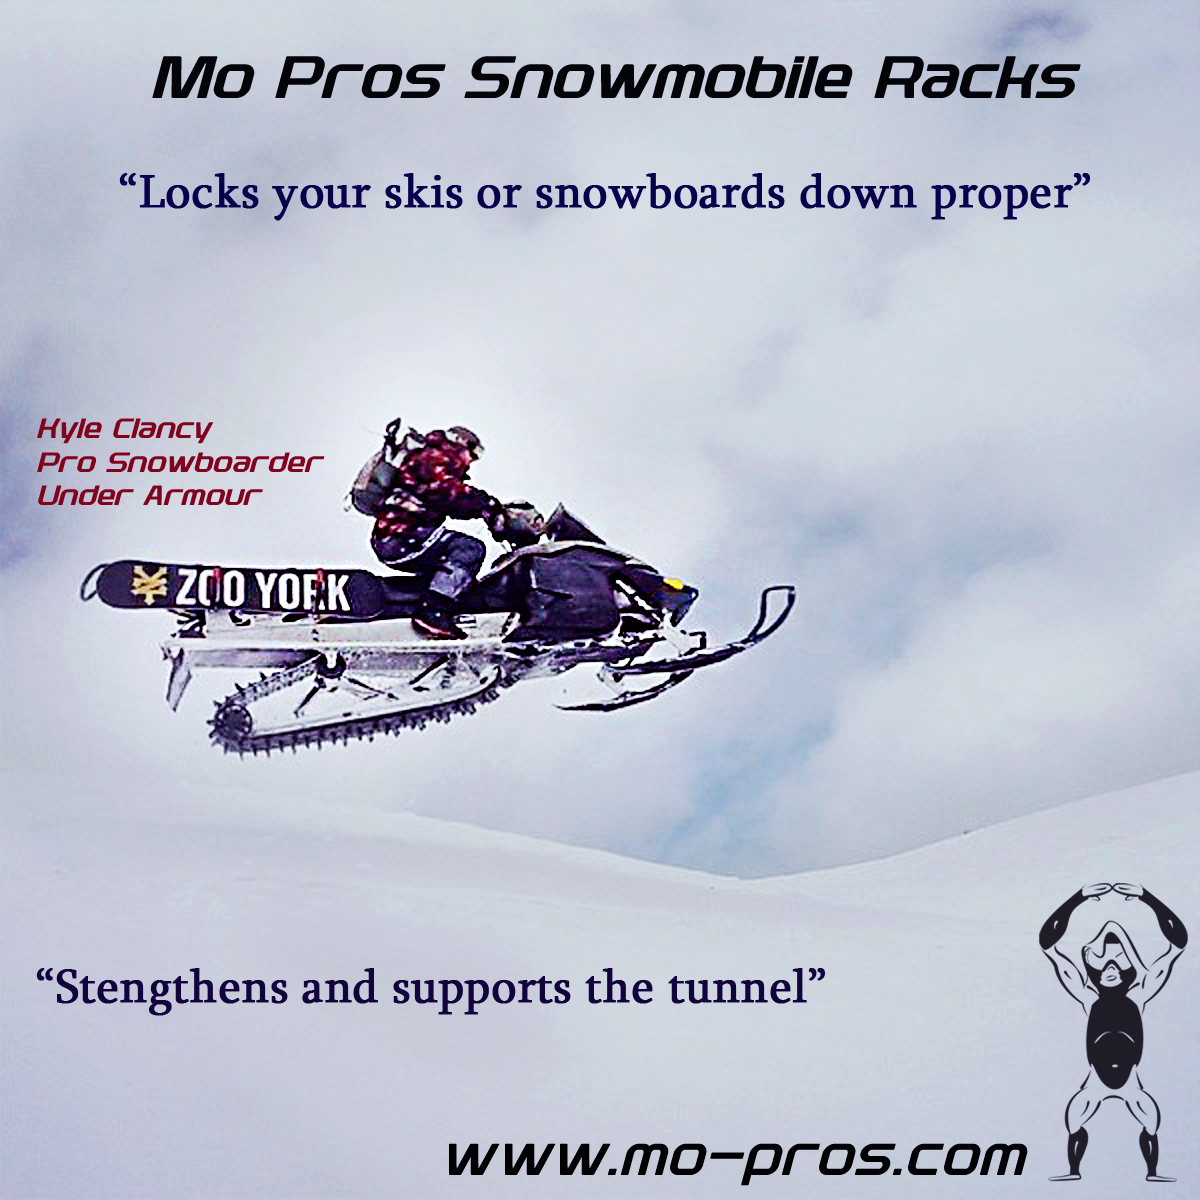 The Mo Pros Snowmbike Rack is serious Backcountry Adventure Gear. Timberlseds don't have capability to carry cargo, so attaching a snowmobile rack for carrying gas and cargo is essential.